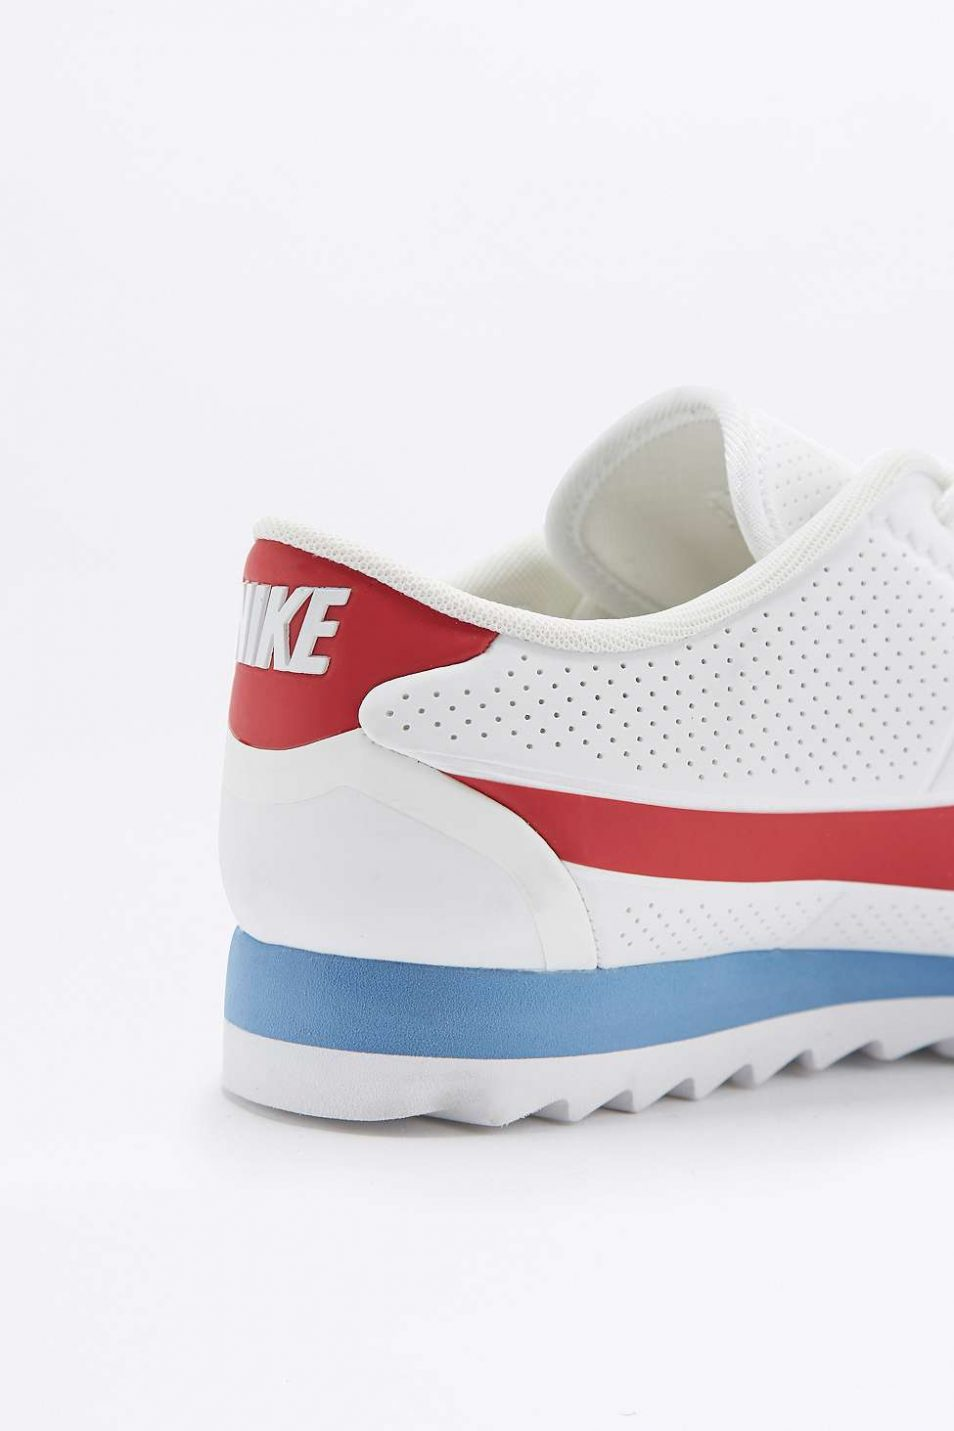 Nike Cortez Ultra Moire Red White and Blue Trainers 3